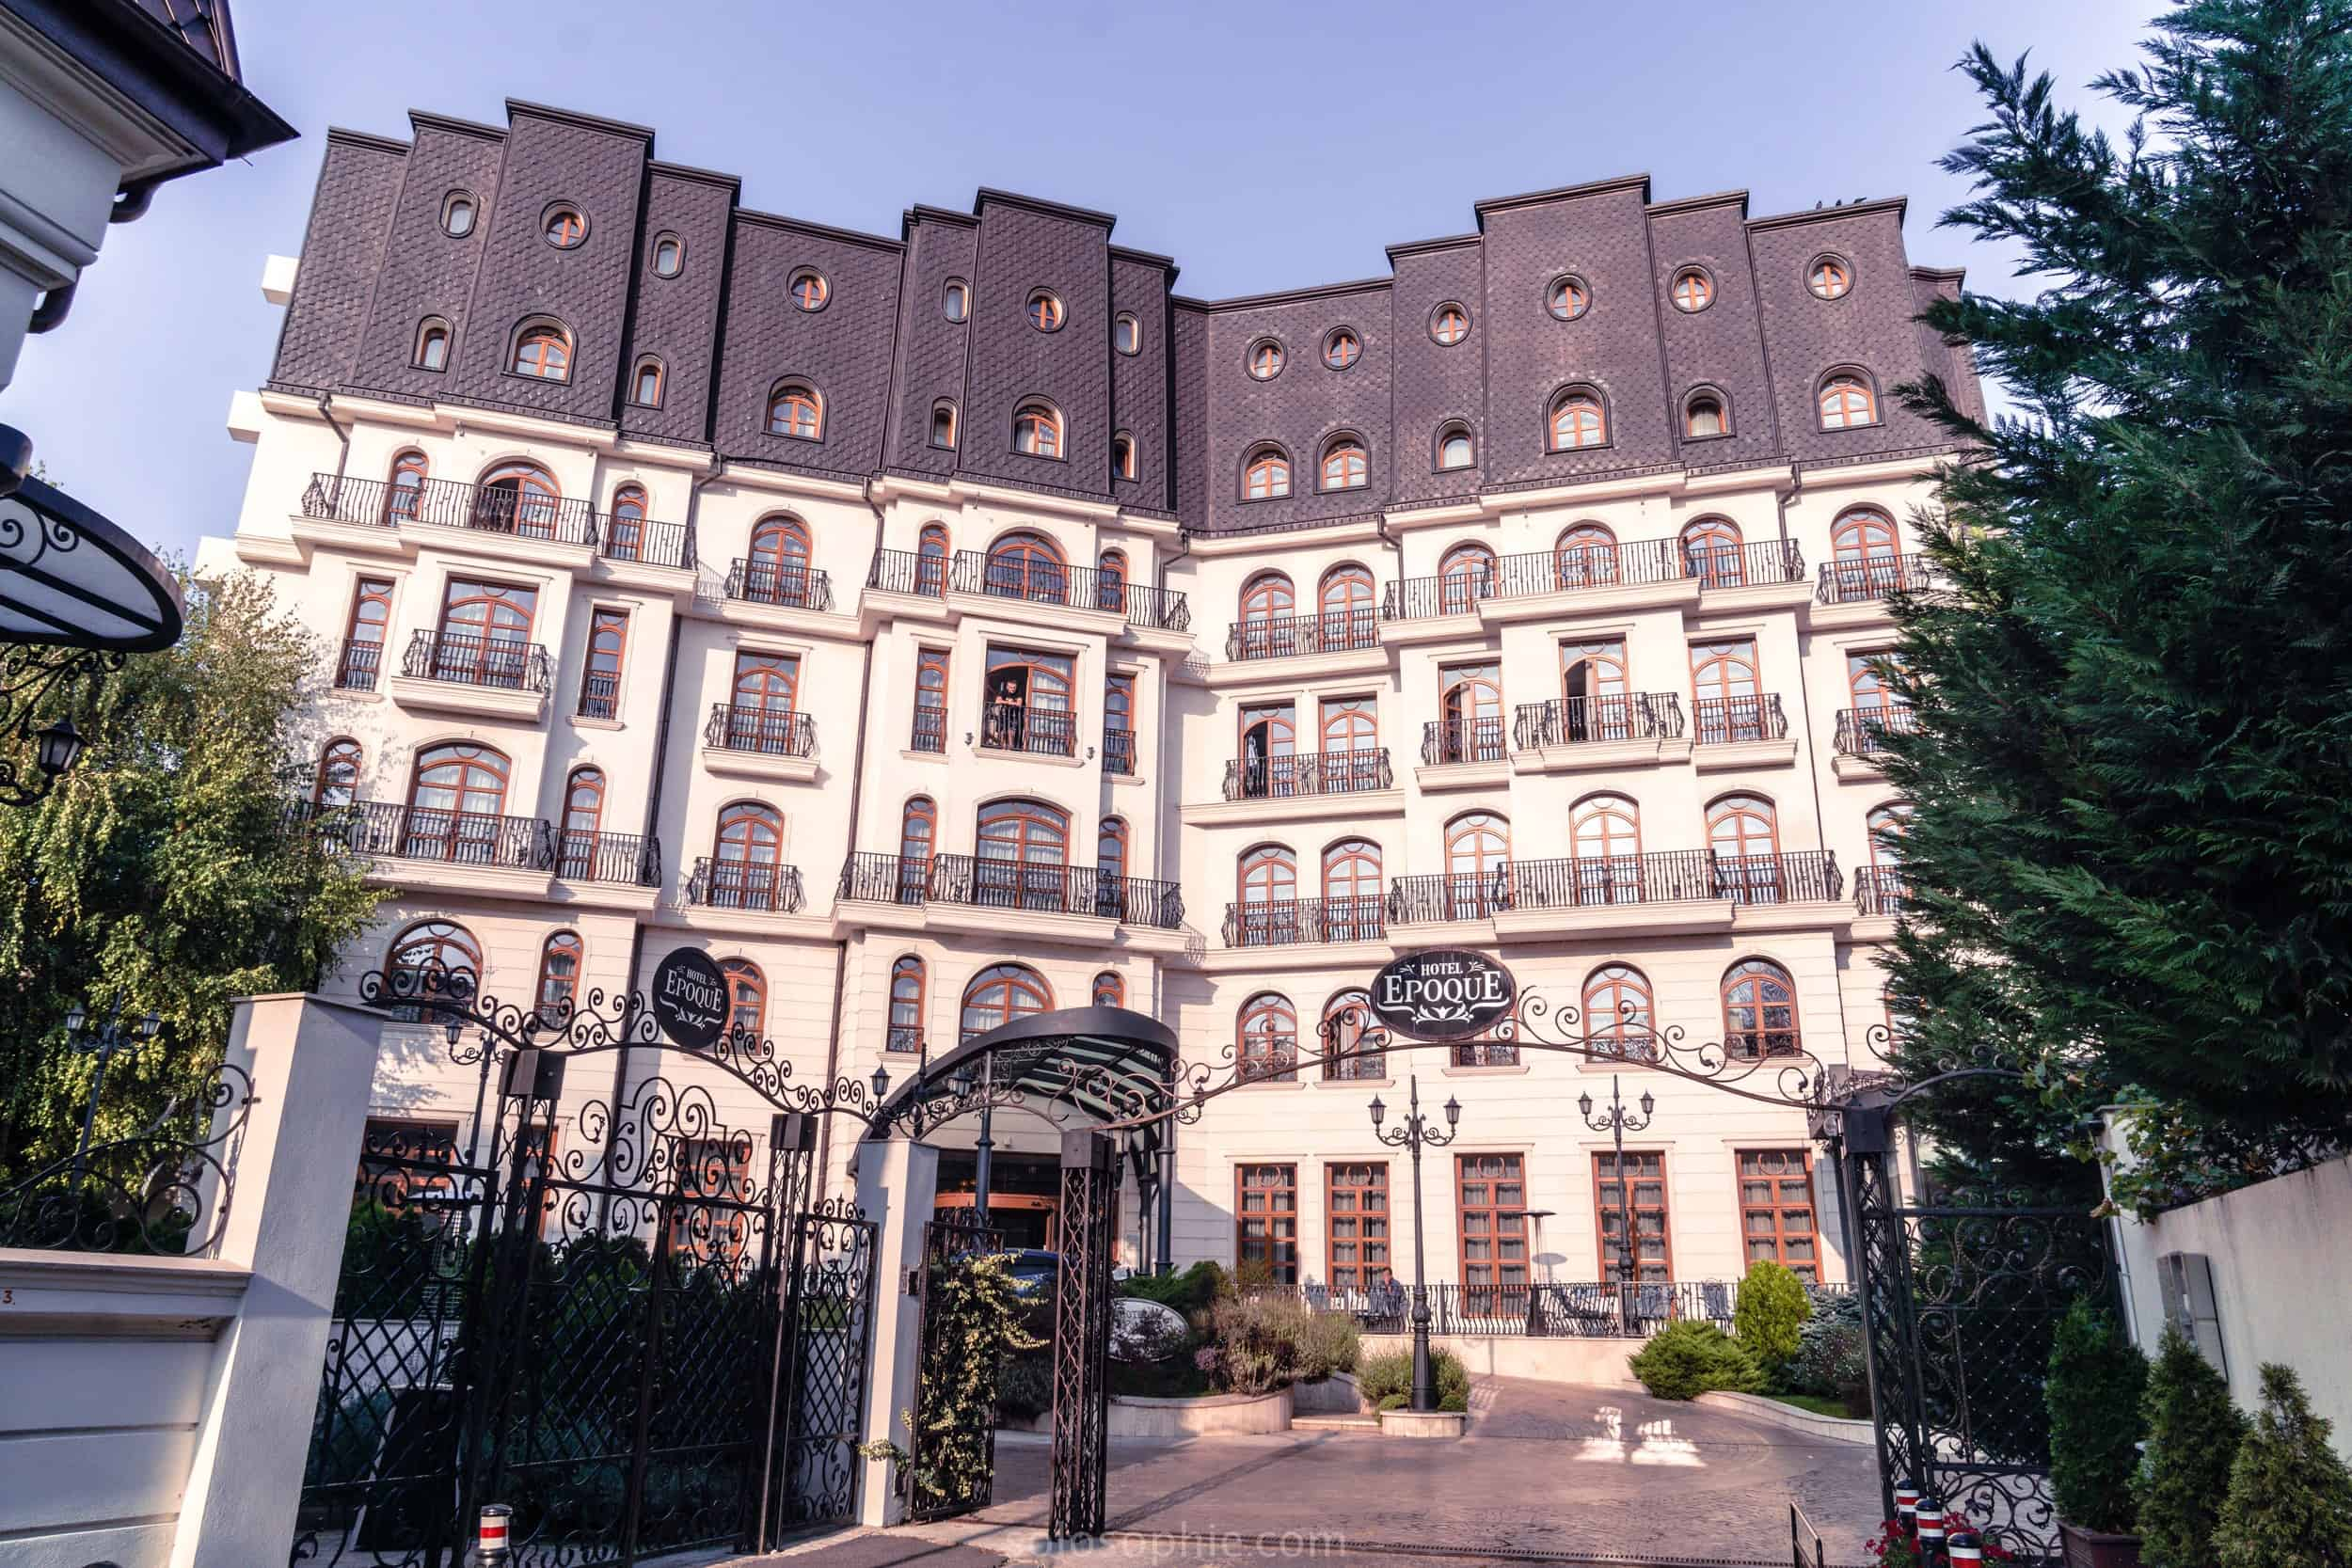 Hotel Epoque Review, Bucharest, Romania: an overall impression of staying at the luxury 5 star hotel in the heart of the city